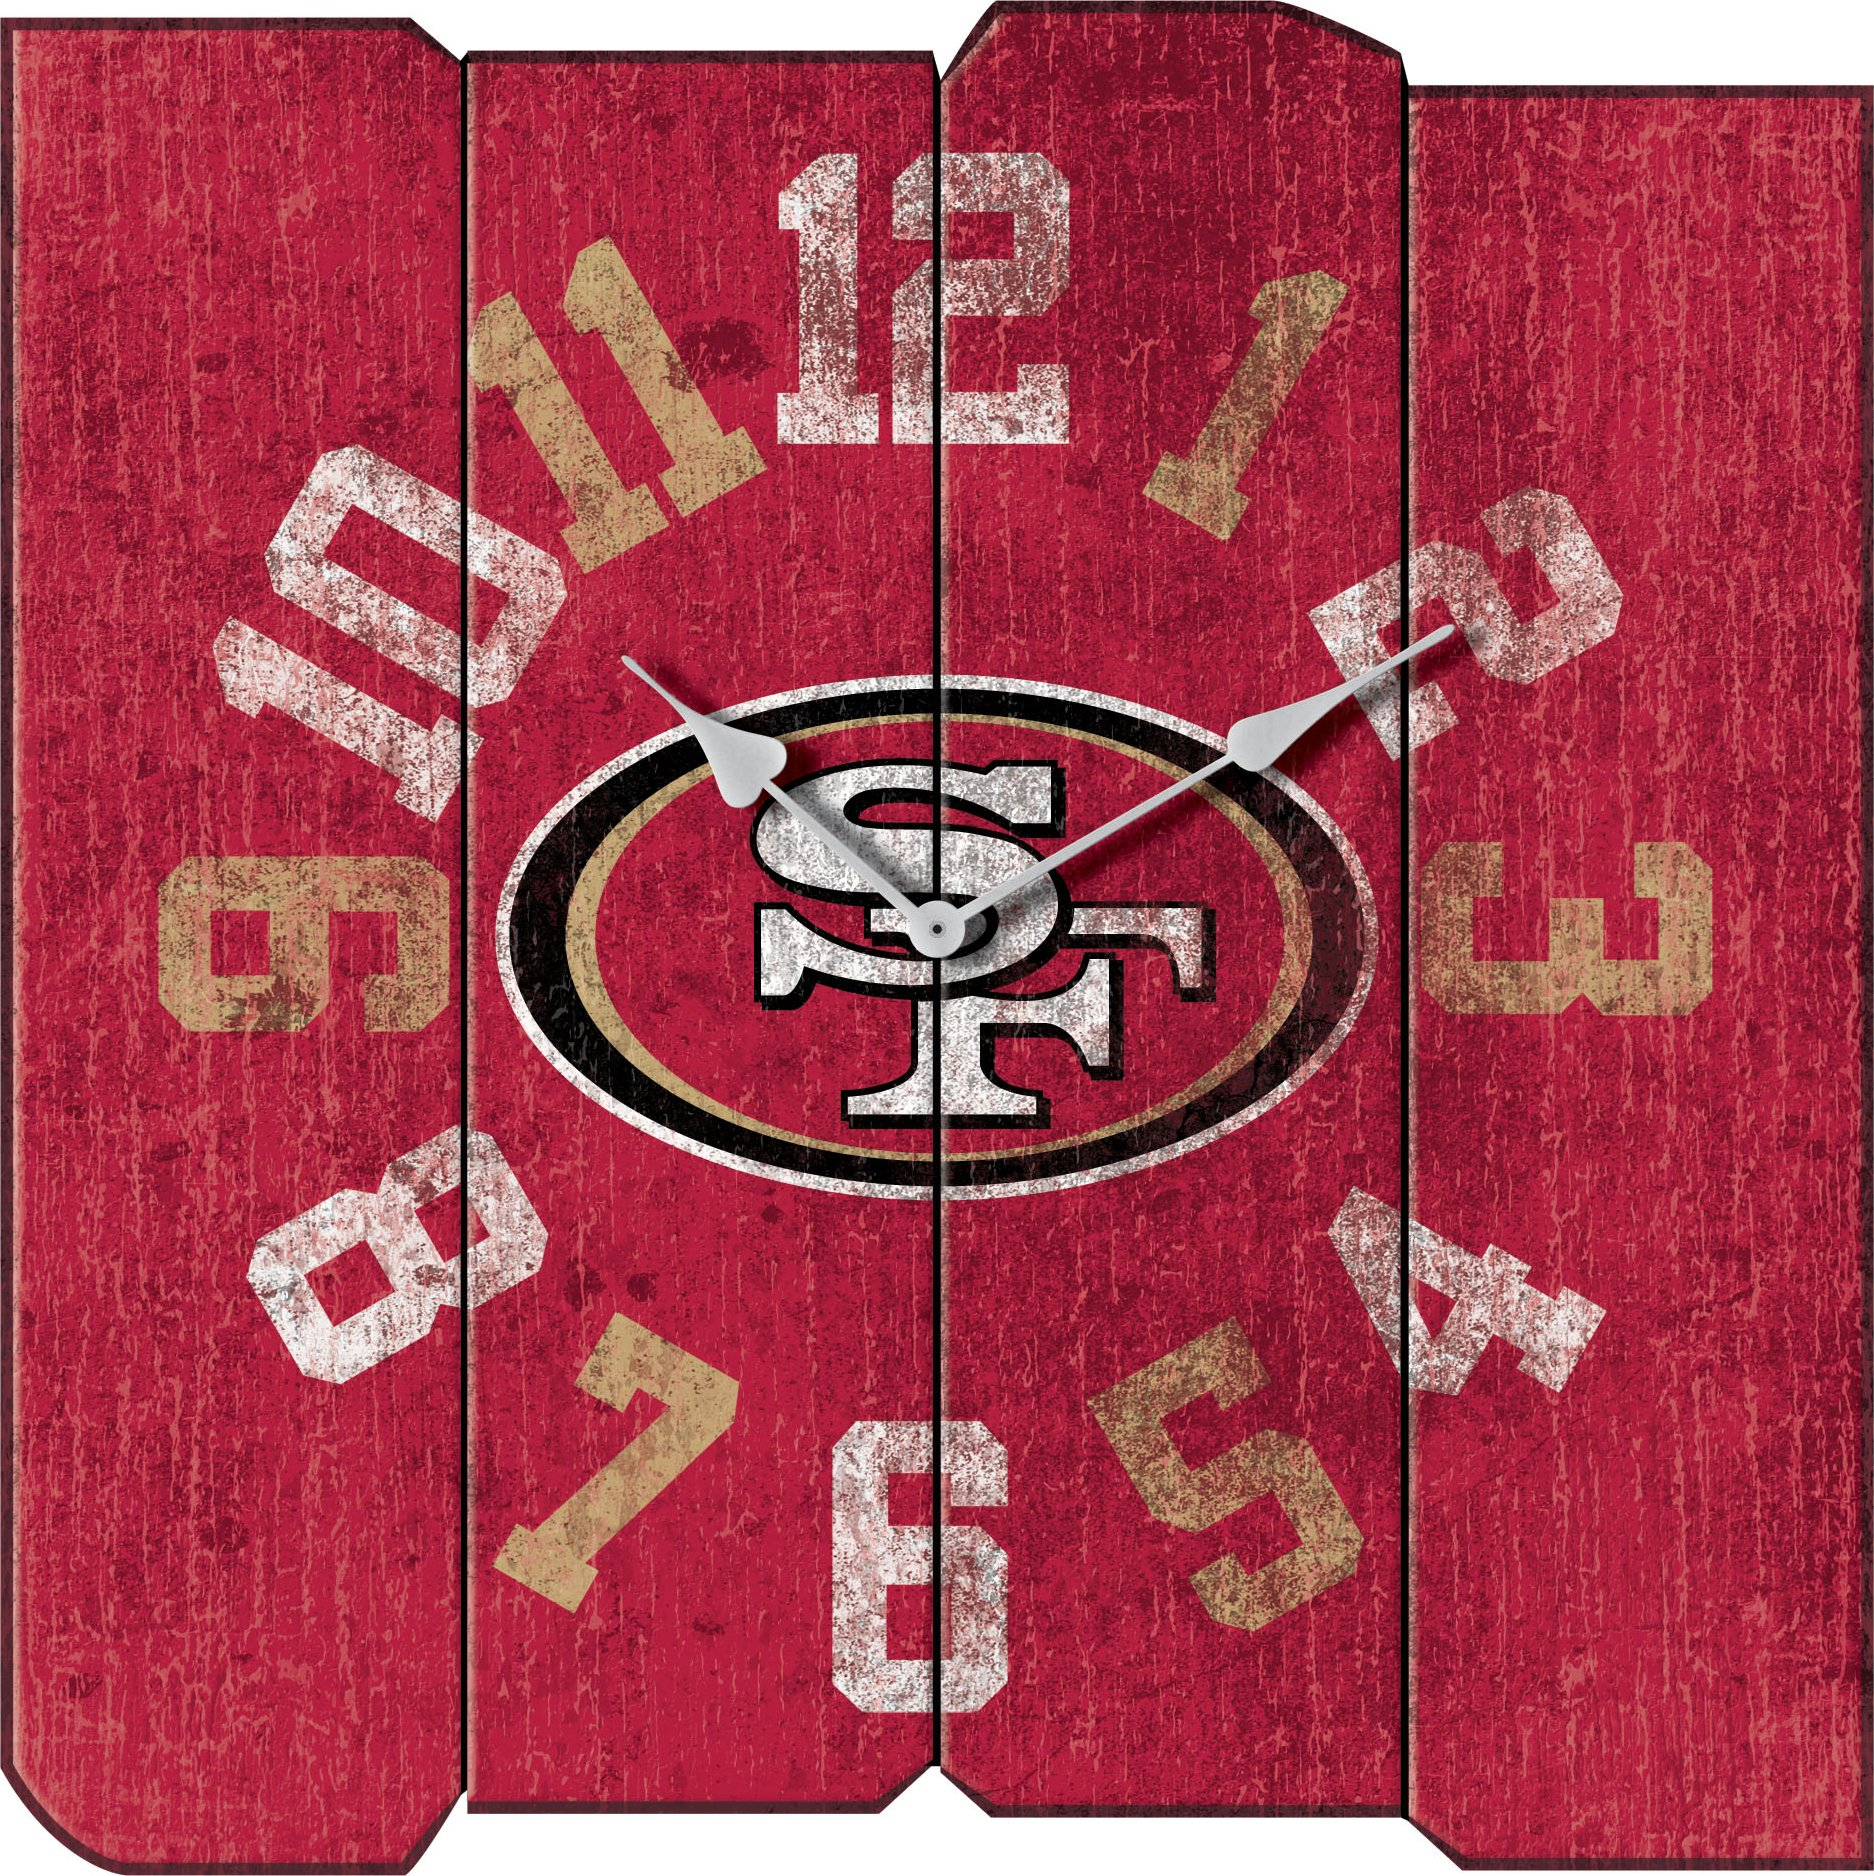 Imperial Officially Licensed NFL Merchandise: Vintage Square Clock, San Francisco 49ers by Imperial